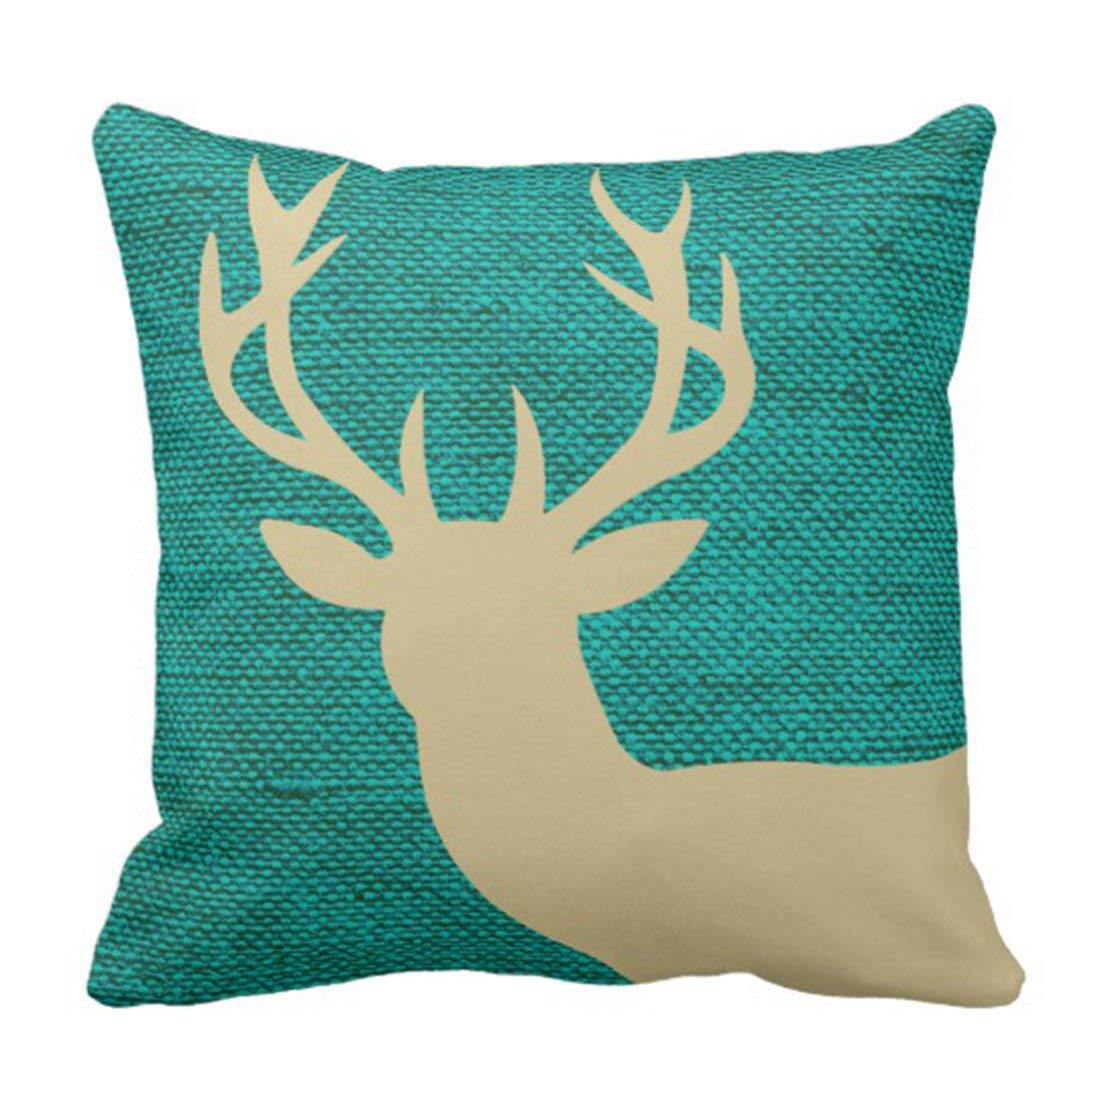 BPBOP Teal Point Rustic Deer Head Silhouette on Burlap Beige Stag Pillowcase Cushion Cover 18x18 inches